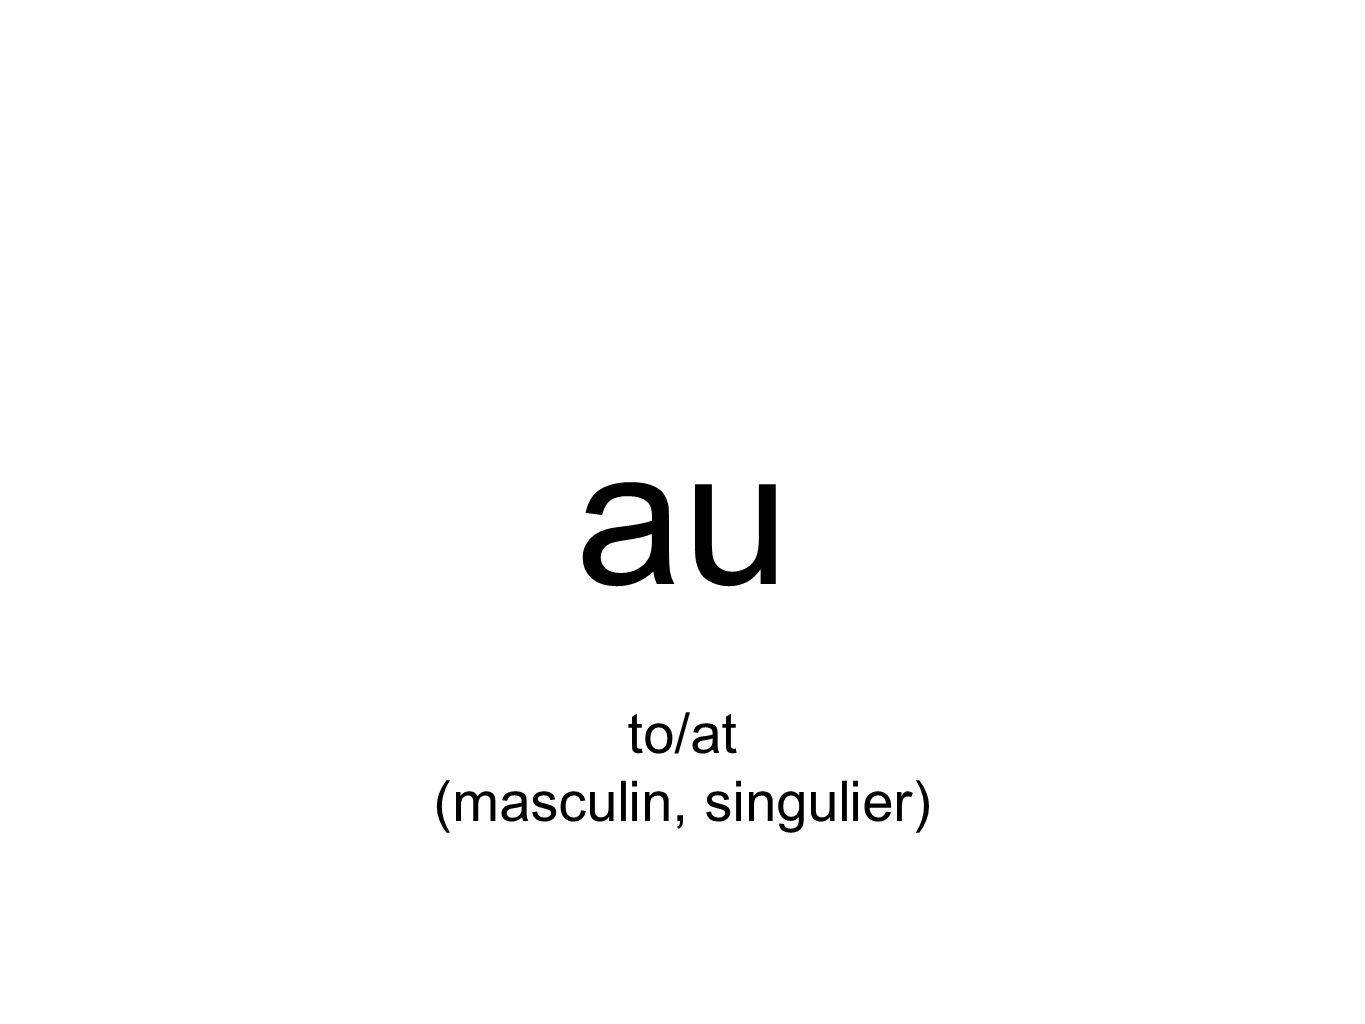 au to/at (masculin, singulier)